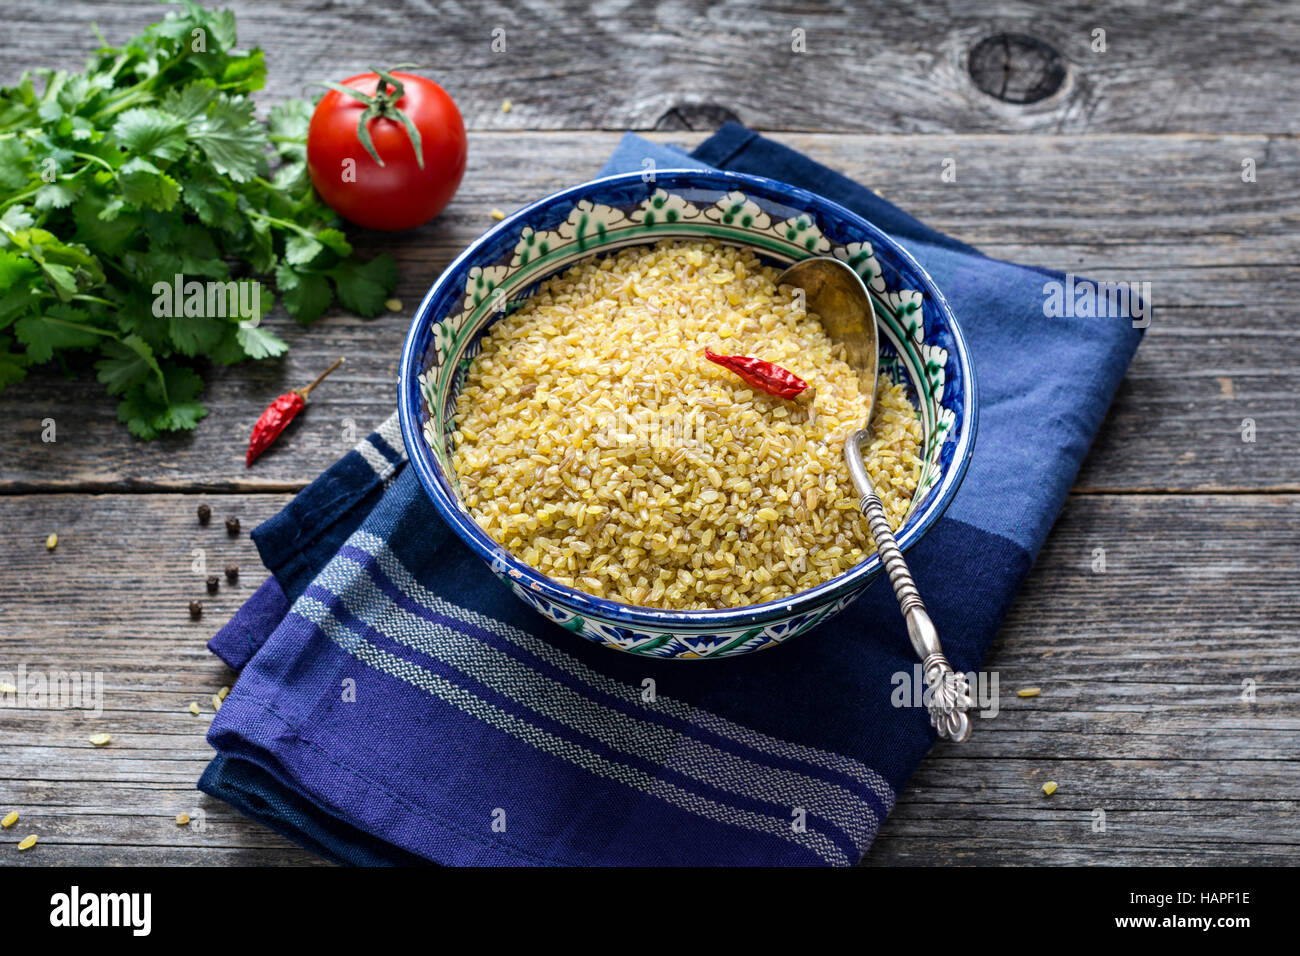 Raw bulgur wheat grains in colorful arabic bowl, fresh parsley, tomato and peppers for cooking. Wooden table background - Stock Image